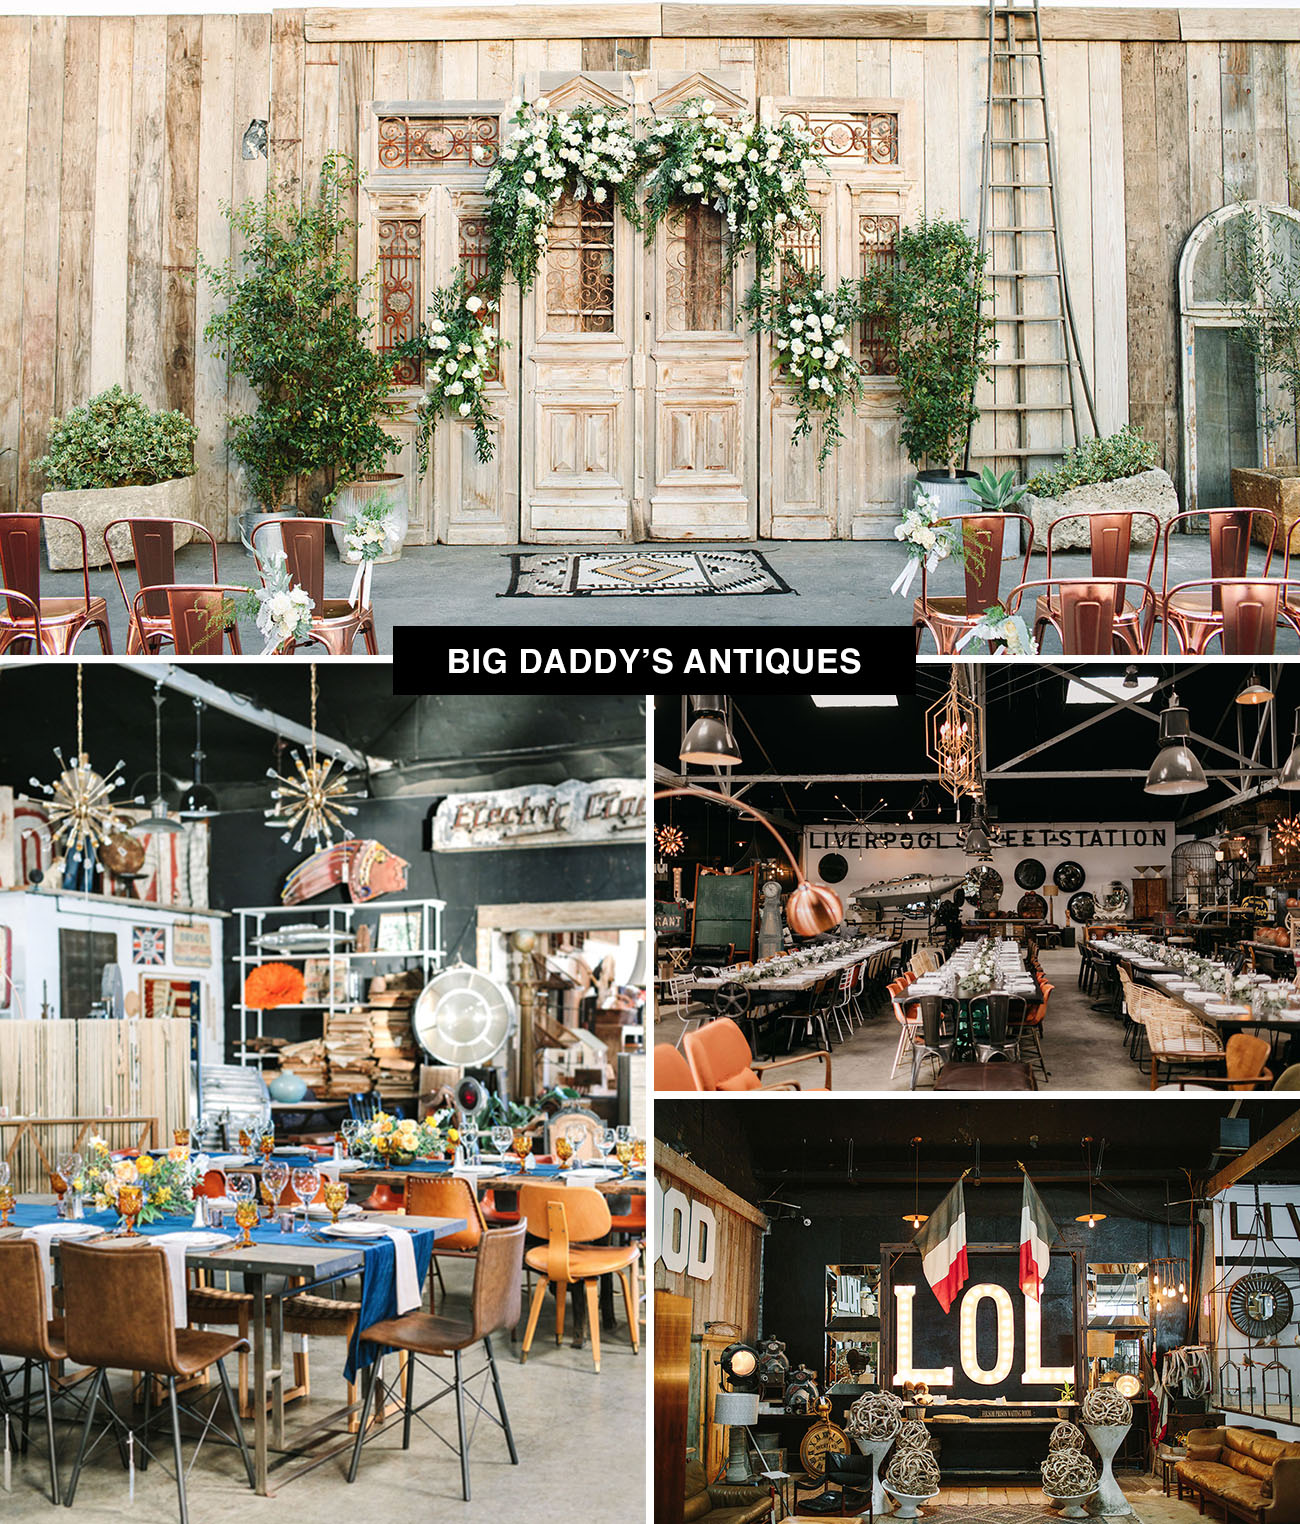 Big Daddy's Antiques wedding venues in Los Angeles and San Francisco - an eclectic place to get married